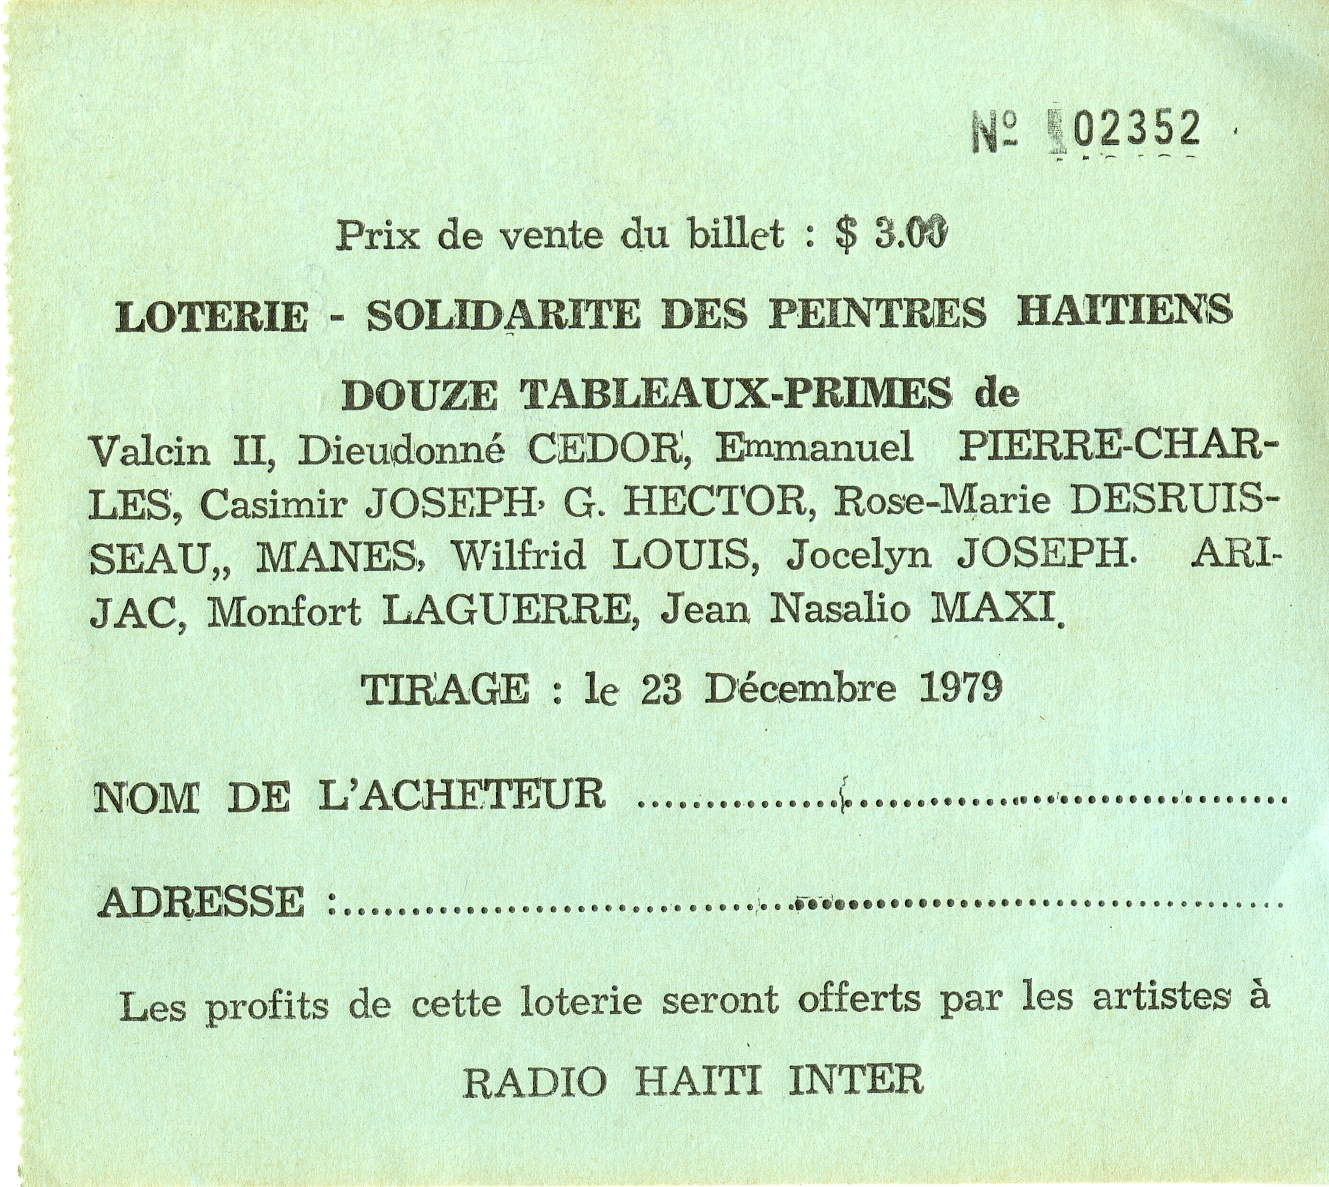 Raffle Ticket, December 1979